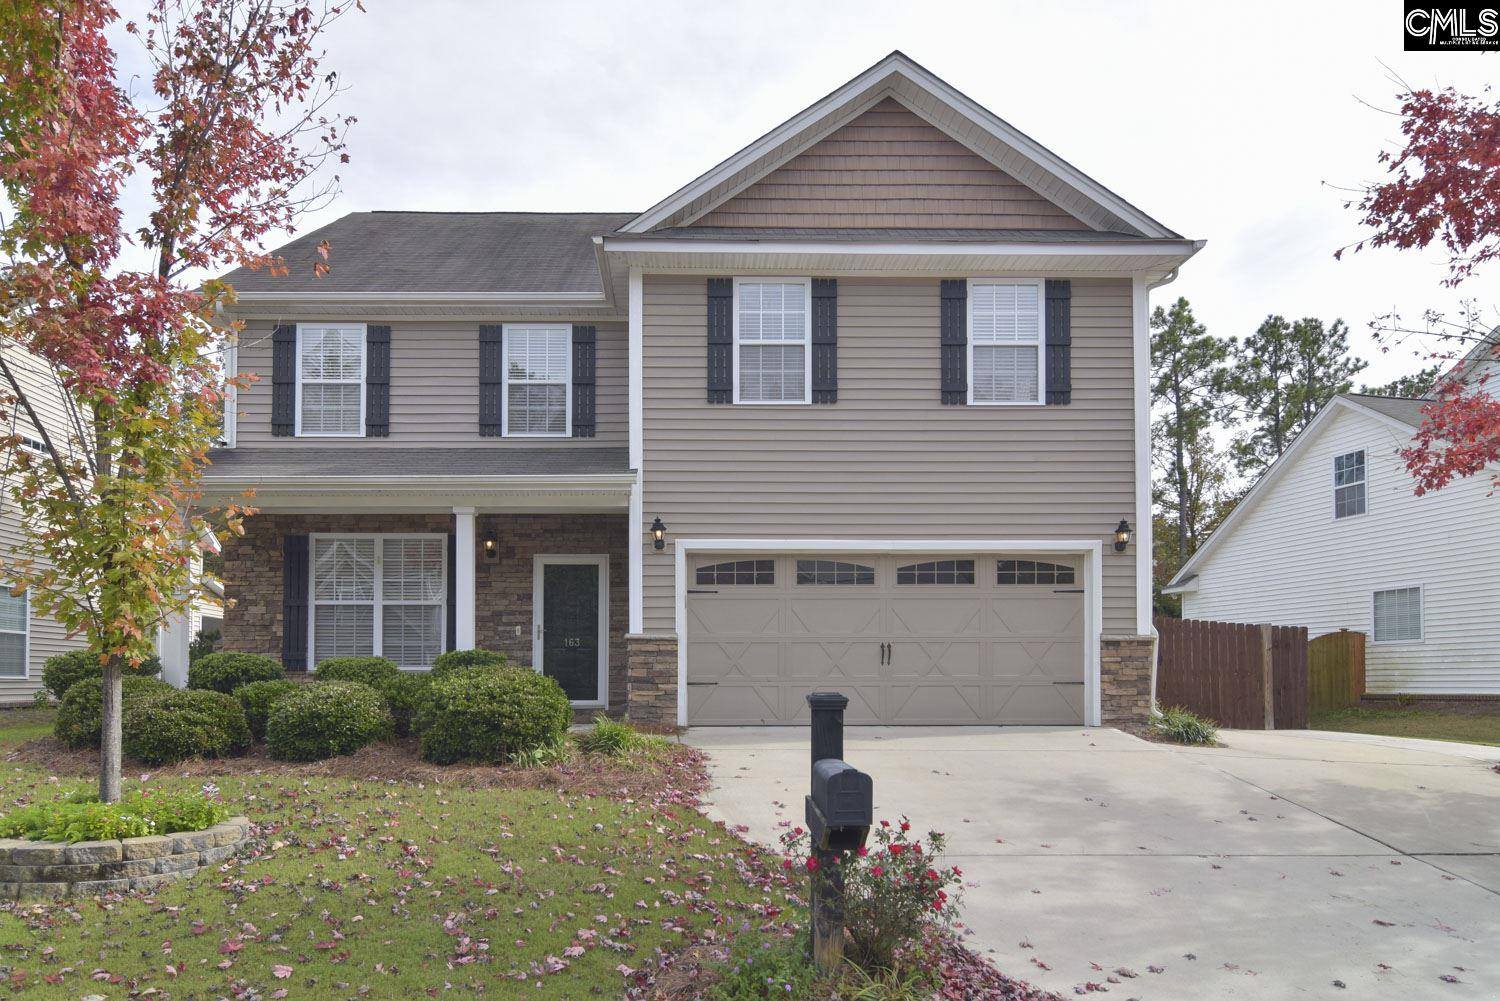 163 Millhouse Lexington, SC 29072